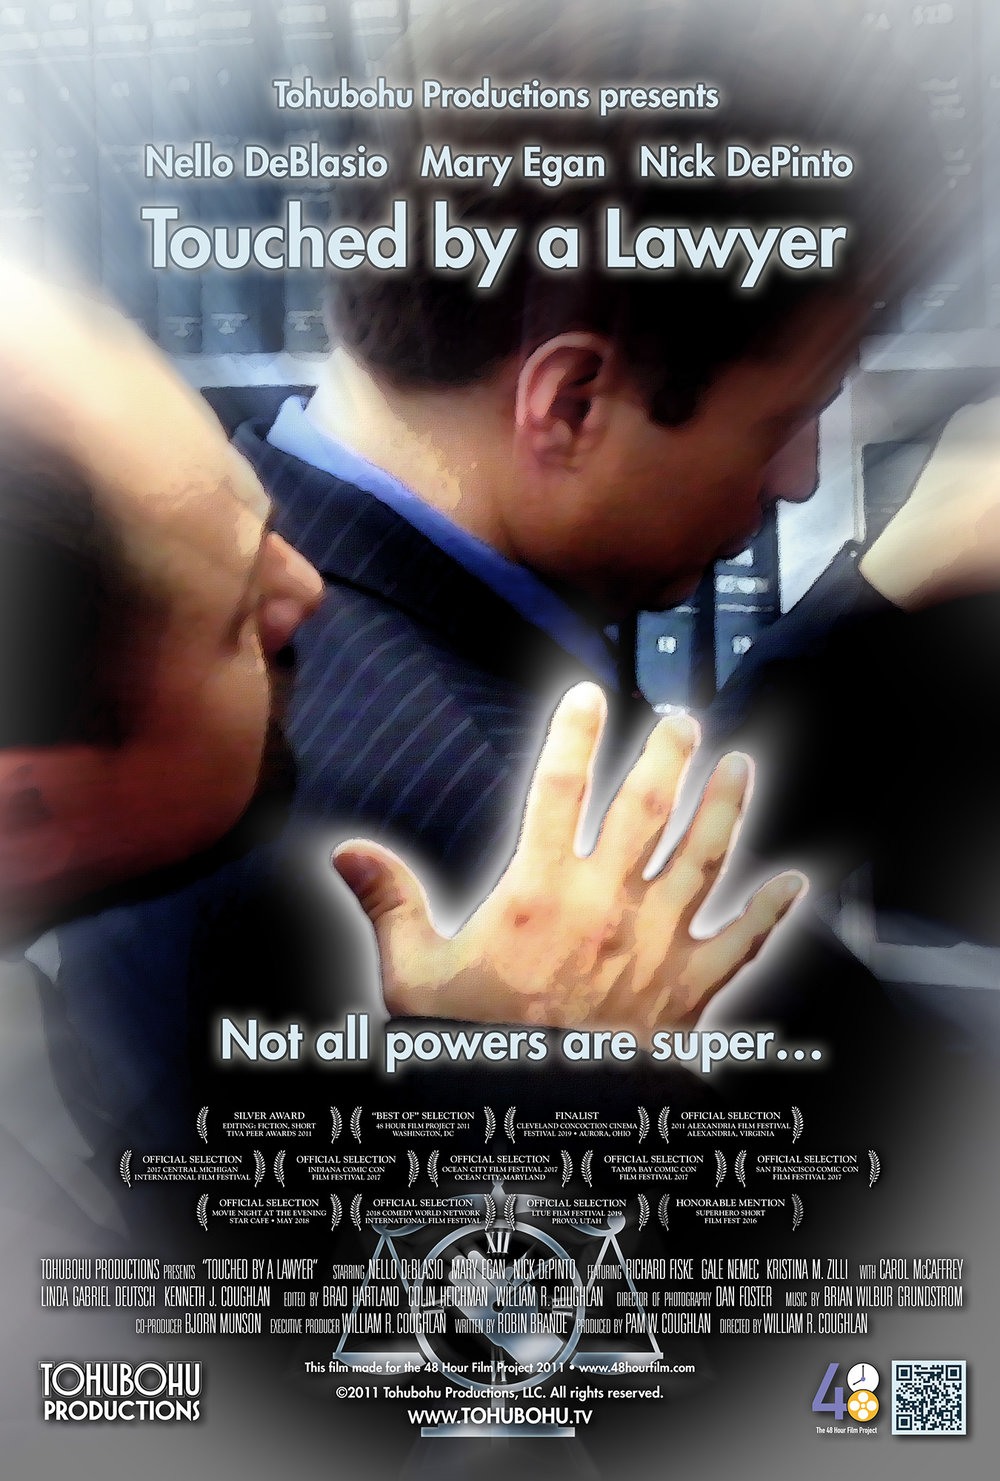 """Touched by a Lawyer - 2011 · 5:53 · written by Robin Brande · produced by Pam W. Coughlan · directed by William R. CoughlanPhil has an amazing ability: With a touch, he can see exactly one hour and eight minutes into someone's past. Unfortunately, it seems to cause him nothing but trouble — especially at the office, where he is called in before the boss and lectured on """"inappropriate touching."""" His coworker Lily is convinced that his ability makes him a superhero, but Phil is hardly persuaded… until a chance bump with a new client shows him that he may have an opportunity to prove her right.Tohubohu jumped into the 48 Hour Film Project's tenth-anniversary competition with """"Touched by a Lawyer,"""" a """"superhero"""" film produced entirely across the weekend of April 29th through May 1st, 2011. Robin Brande returned to scriptwriting duty, and William R. Coughlan and Pam W. Coughlan were back as director and producer respectively (not to mention celebrating their own wedding anniversary on the weekend in question). Dan Foster stepped up as director of photography for our first film to be shot using a DSLR camera. The team was also followed throughout the competition by a videography crew from TIVA, capturing footage for use in a 48 Hour Film Project tribute video to be shown at the 2011 Peer Awards. The film premiered at the AFI Silver Theatre on Wednesday, May 4th."""